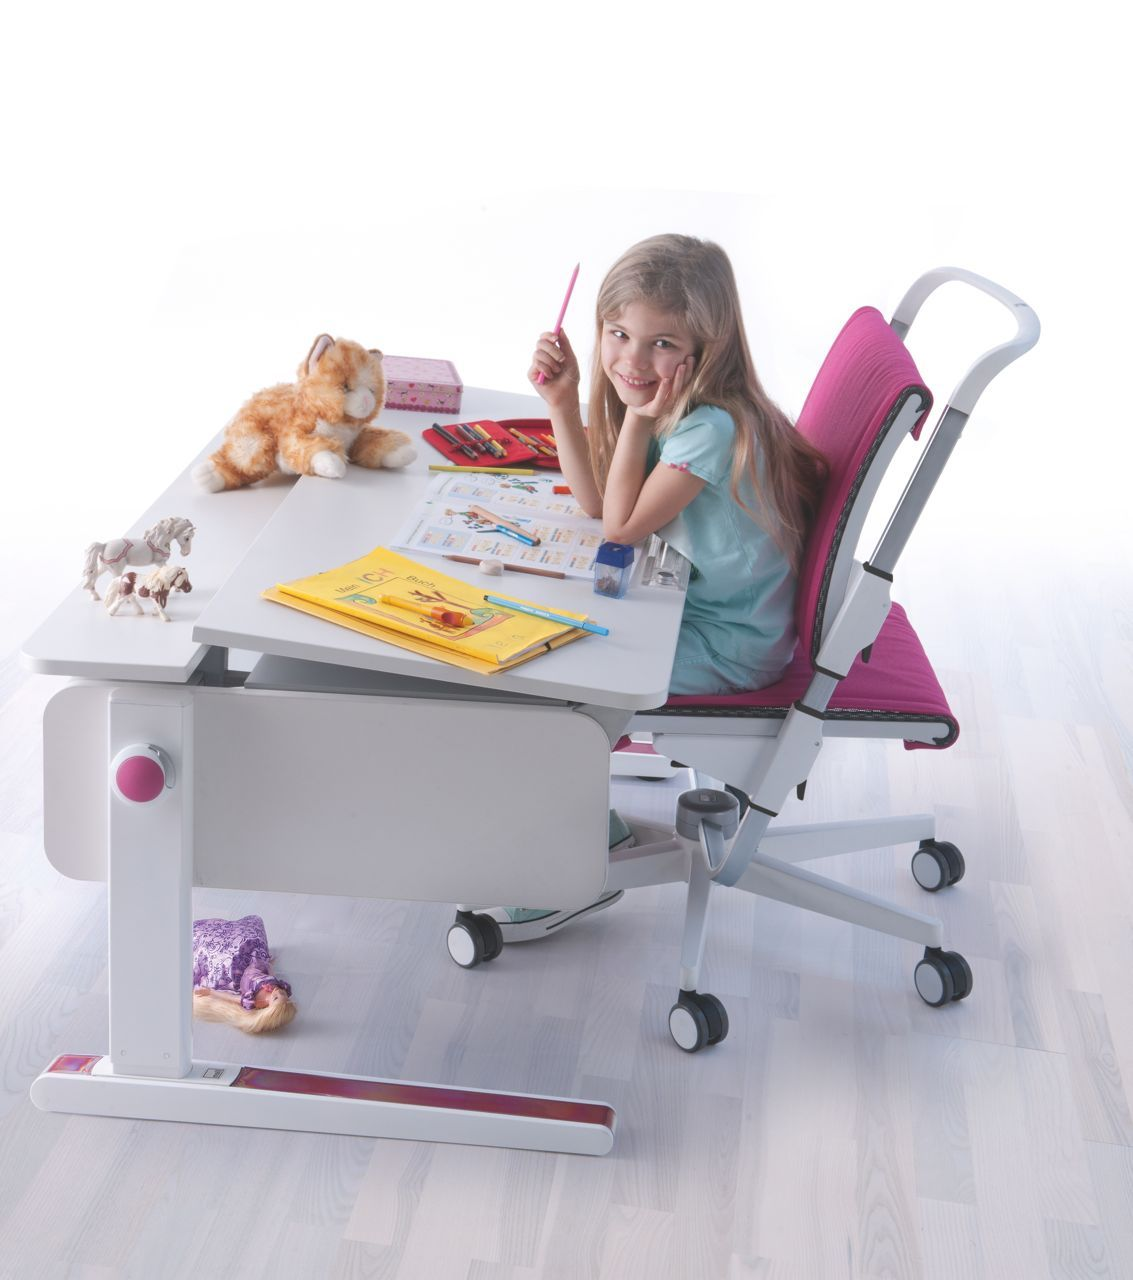 Pin By Ergokid On Ergonomic Kids Desks Chairs Kids Desk Chair Kids Study Desk Kids Study